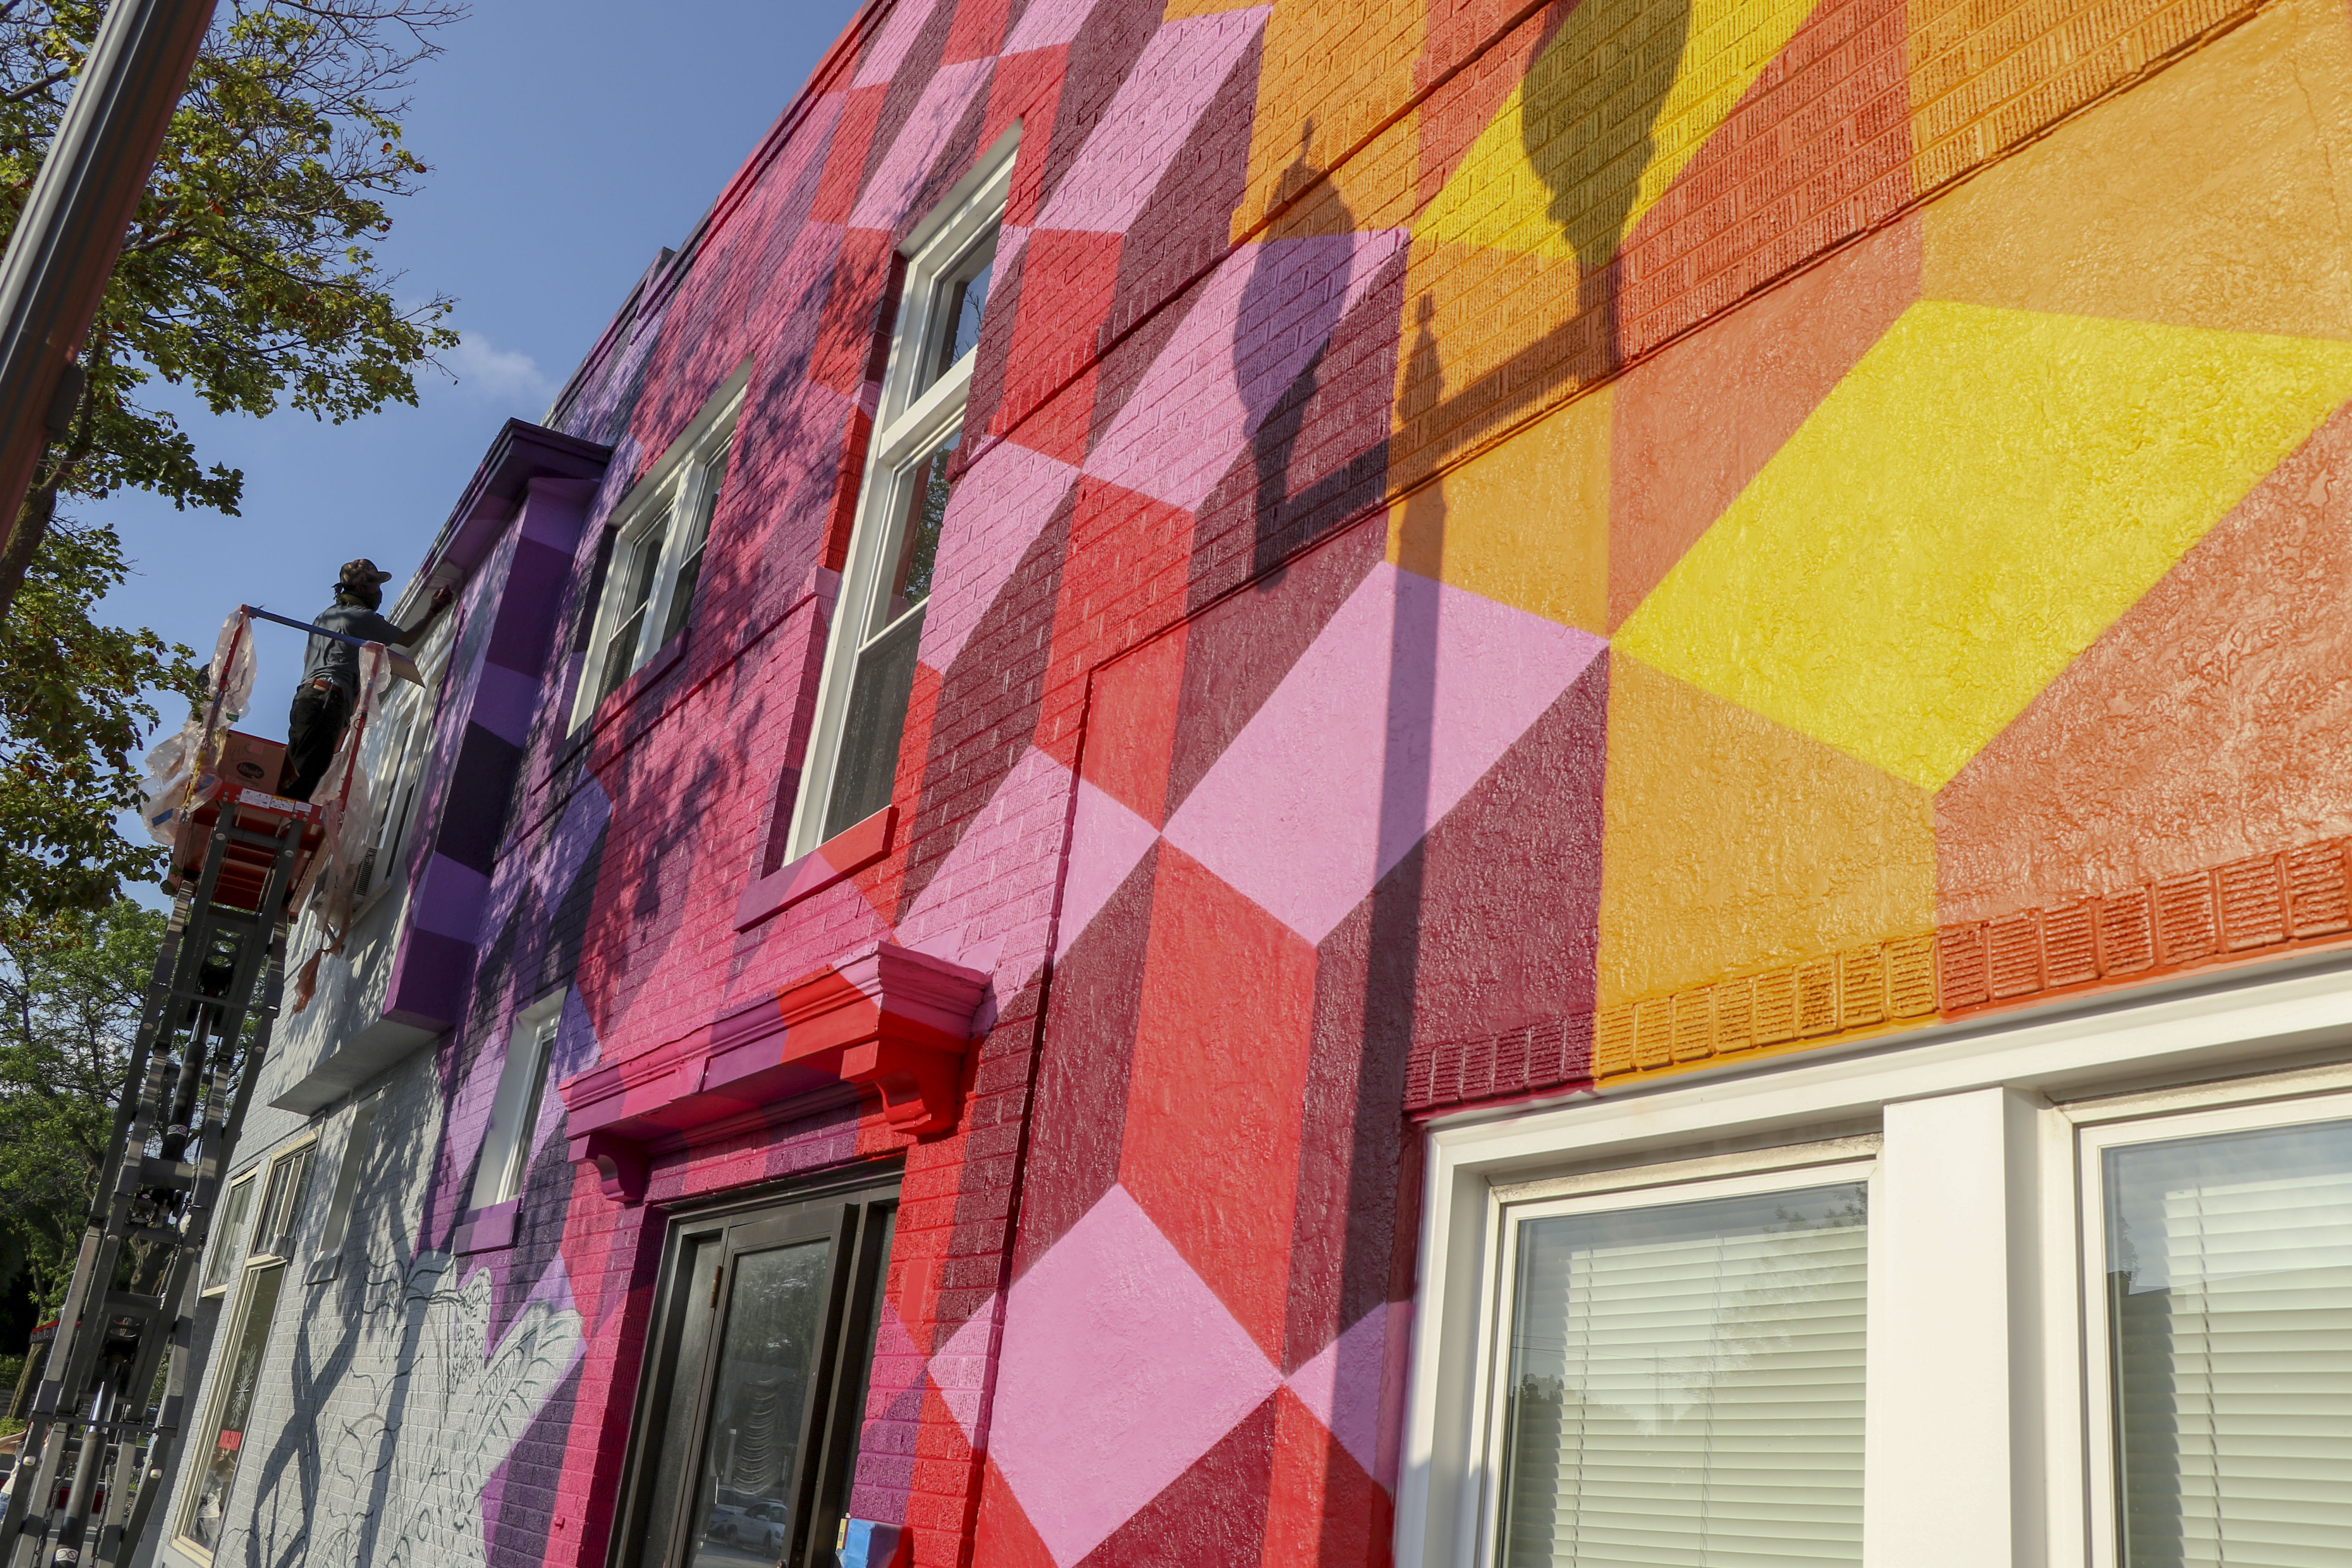 City of Wauwatosa Seeks Artists for Shipping Container Mural Arts Project